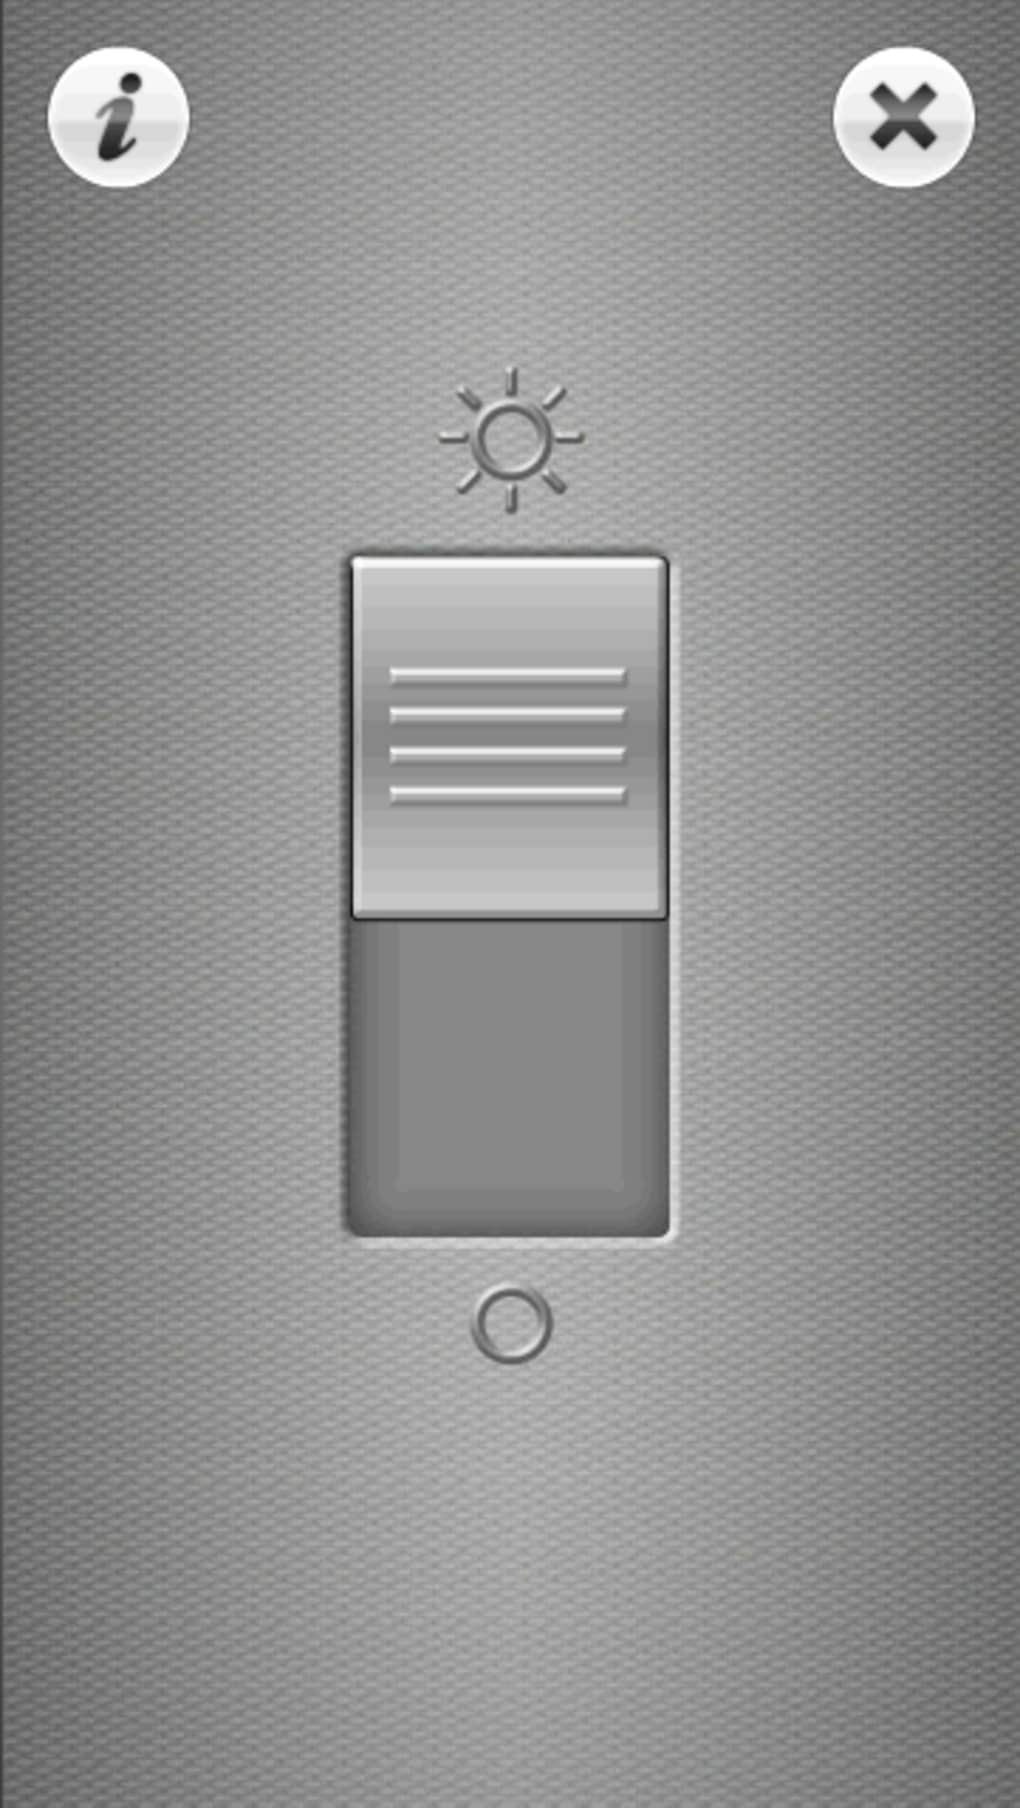 Bright Light Touch For Symbian Download Nokia 5800 Web Browser Diagram